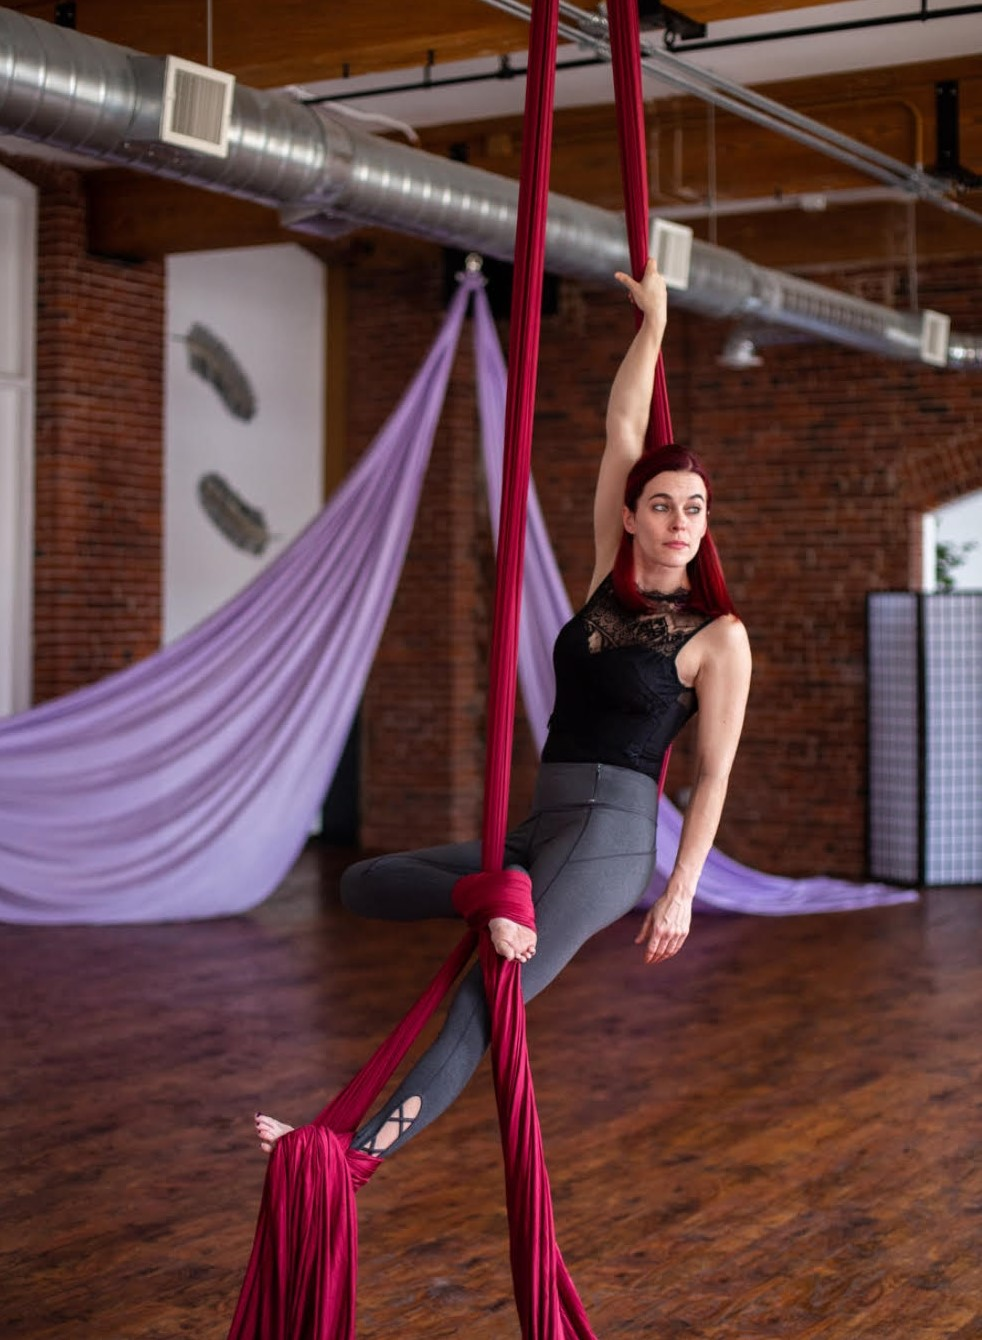 aerial yoga fitness circus nh new hampshire class classes kama fitness nh new hampshire